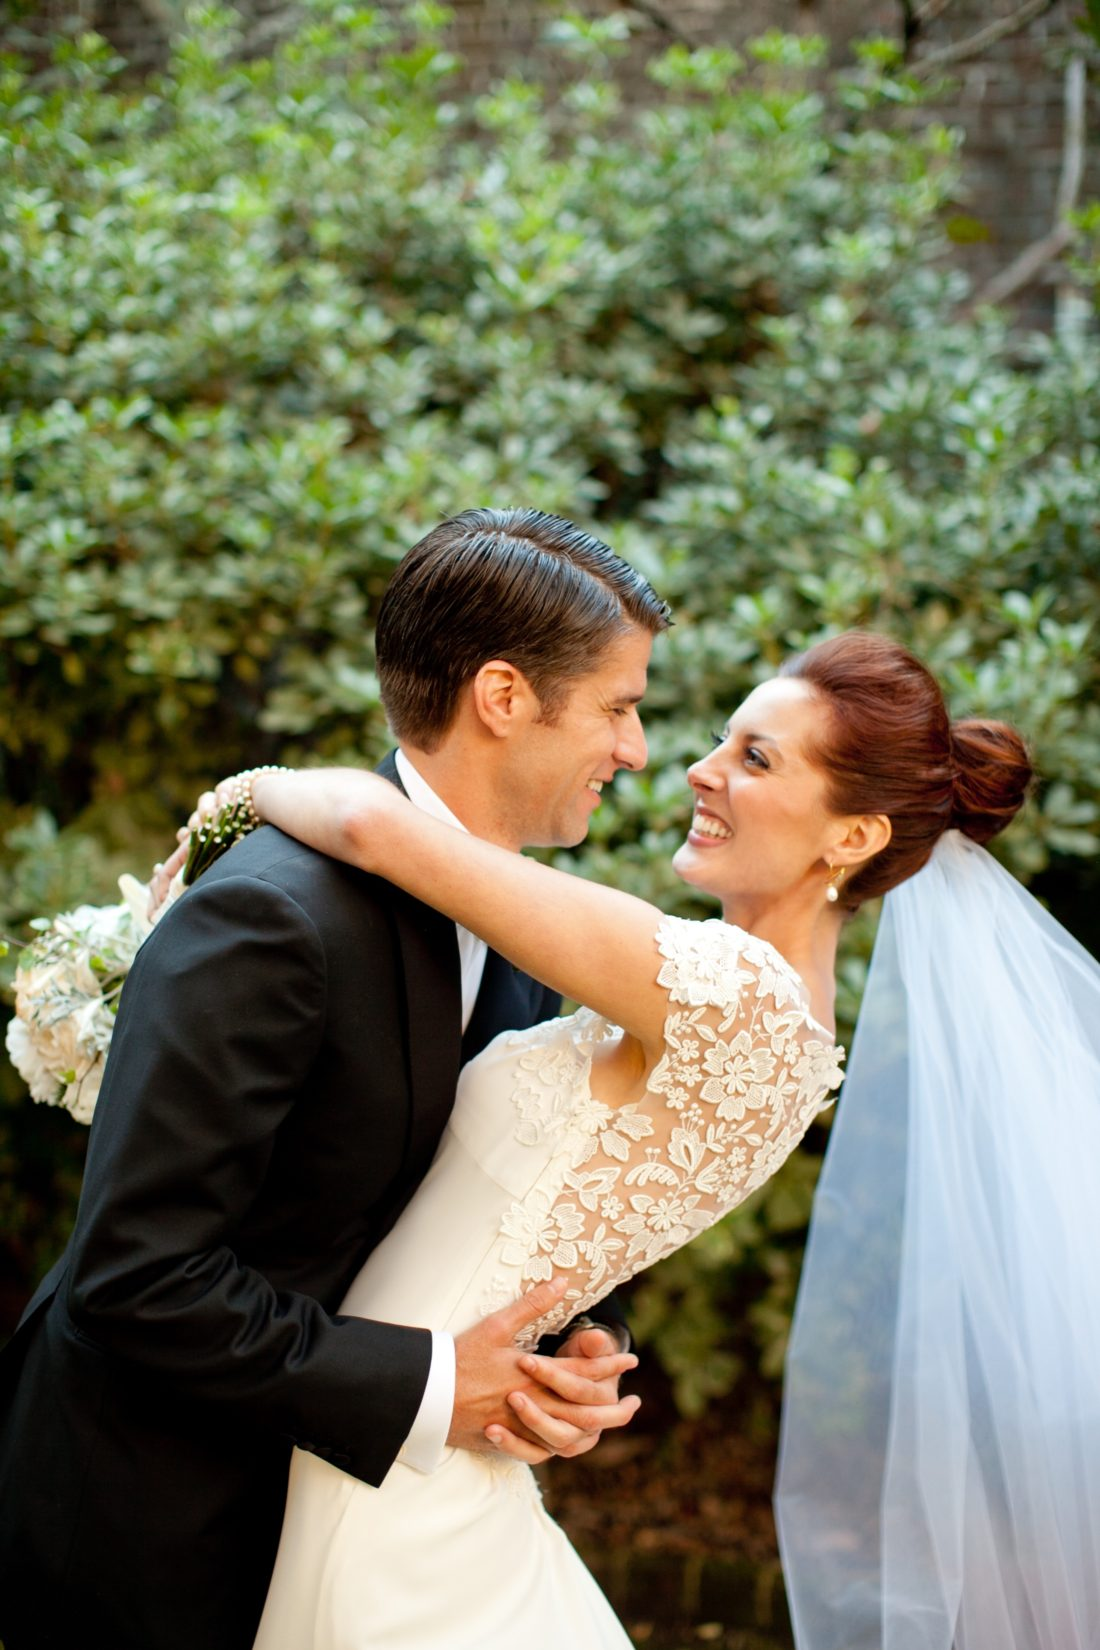 Eva Amurri Martino of lifestyle and motherhood blog Happily Eva After, wearing a white Lela Rose wedding dress with white flower applique detail and a white veil, embracing her husband Kyle Martino wearing a black Brioni tux, on their wedding day in charleston, SC in 2011